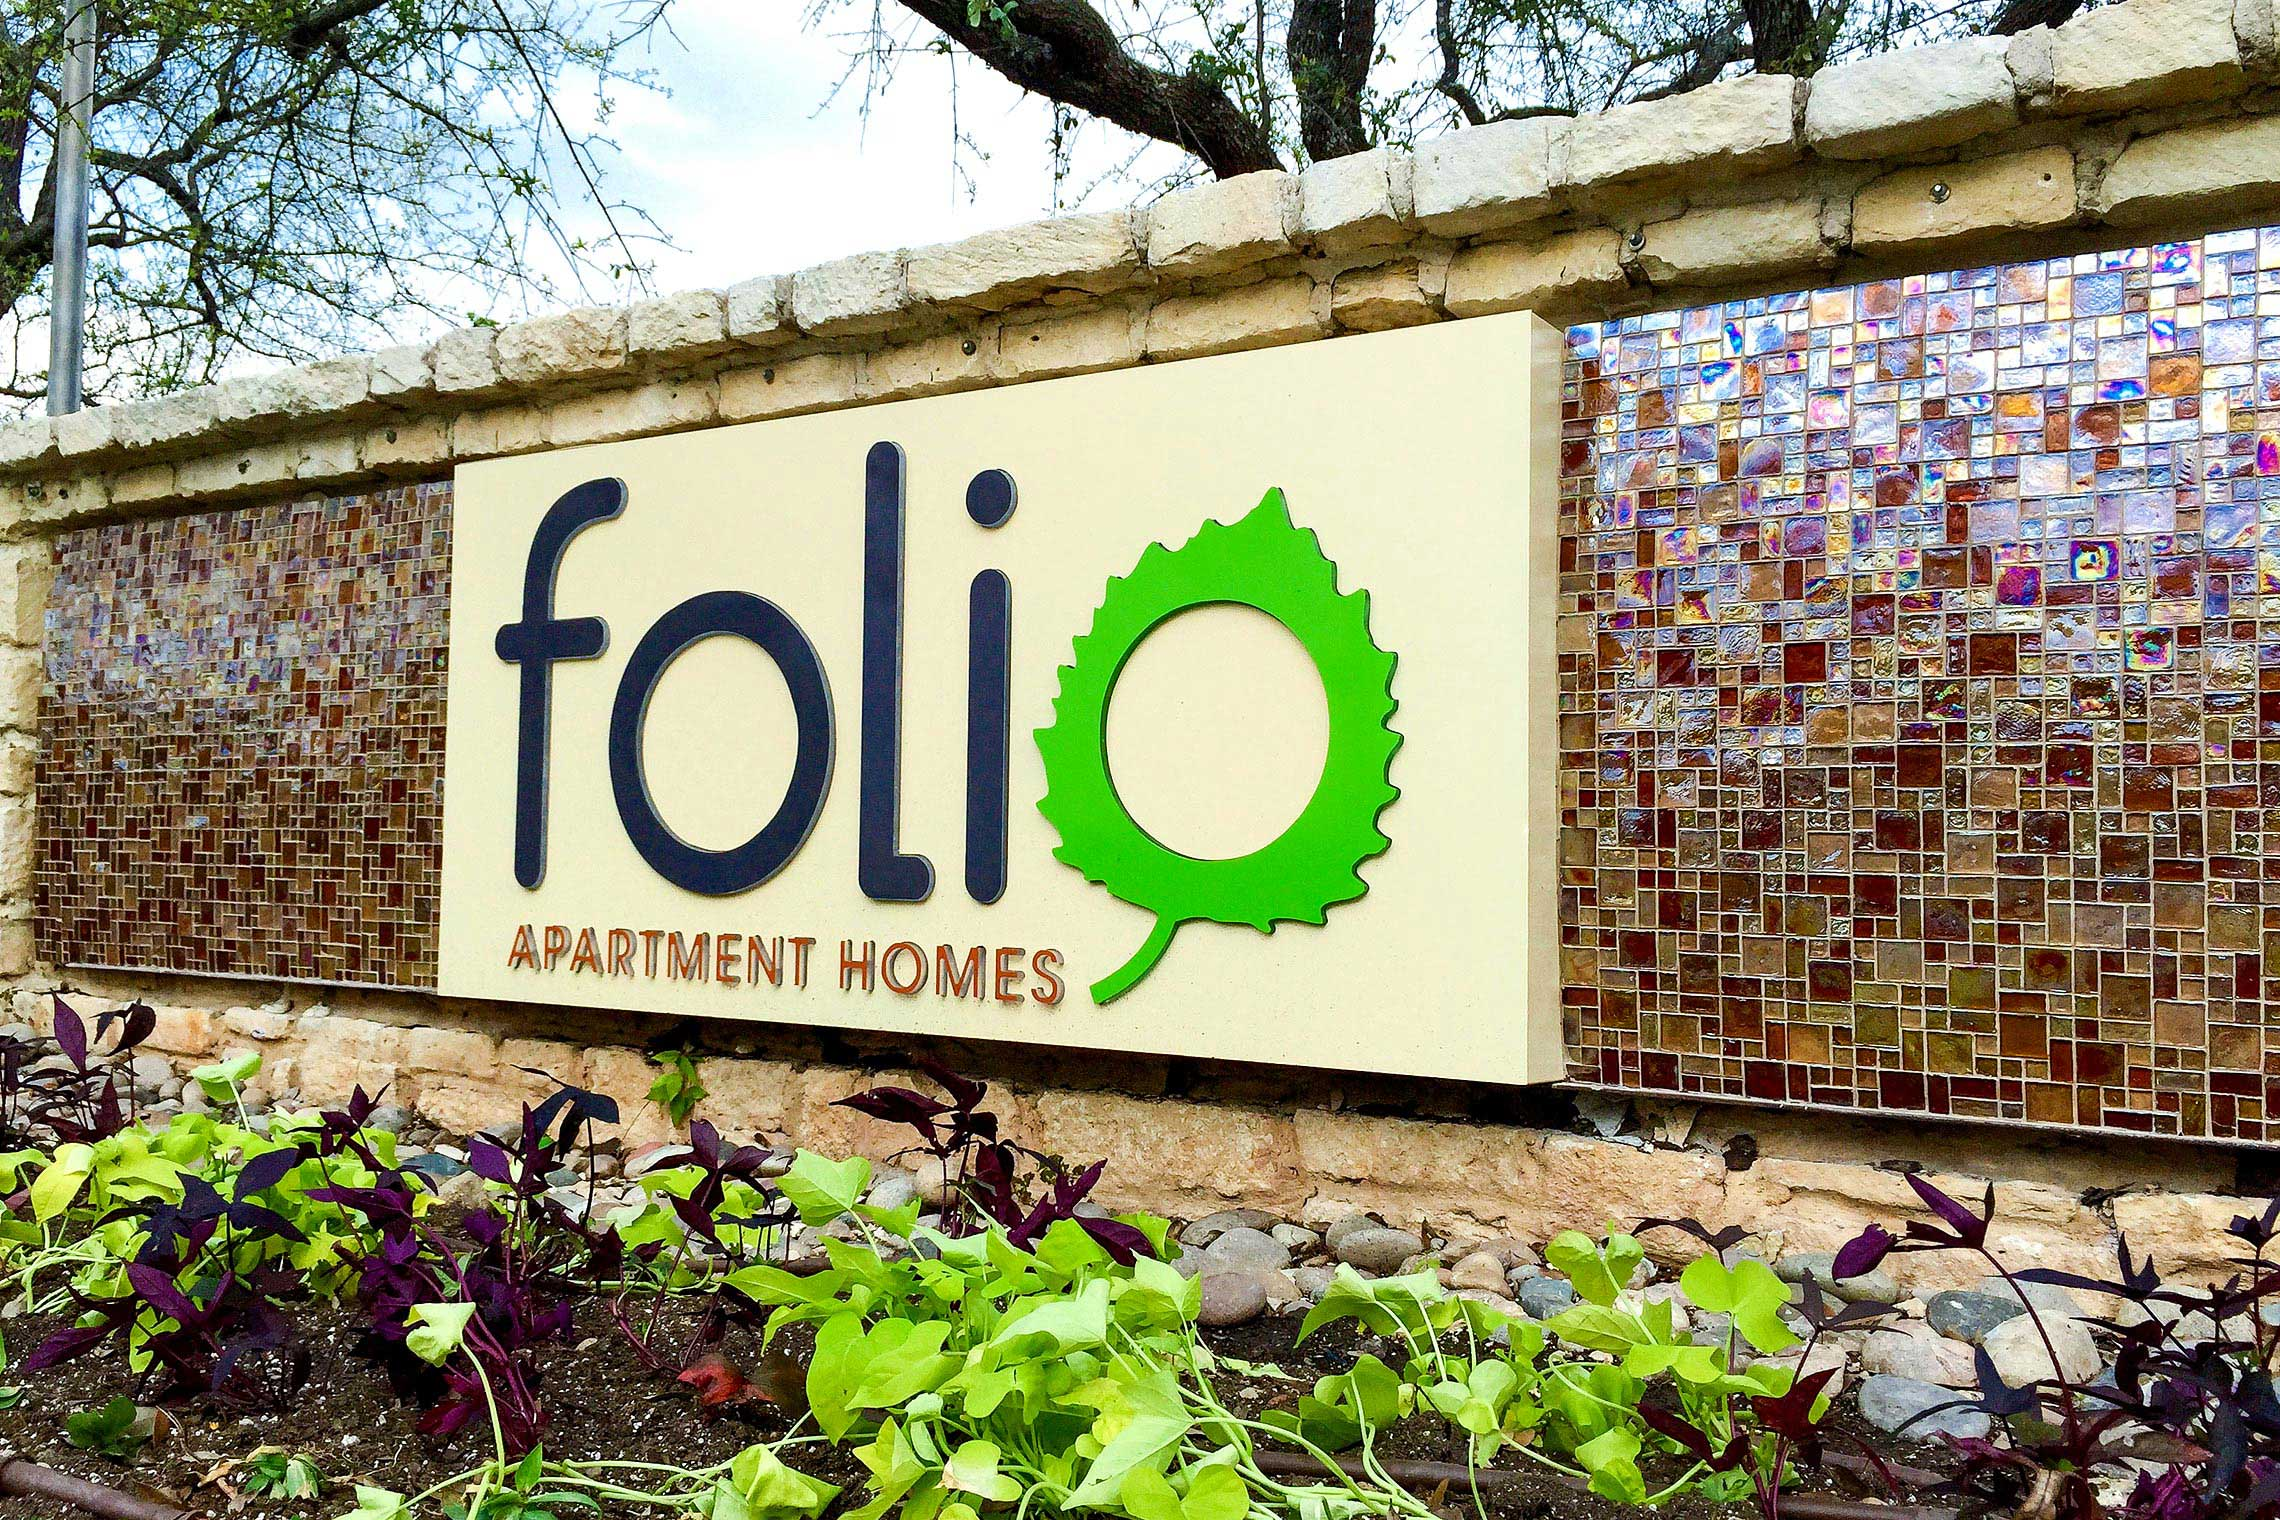 Folio Apartment Homes Illuminated Monument with Tile Accents